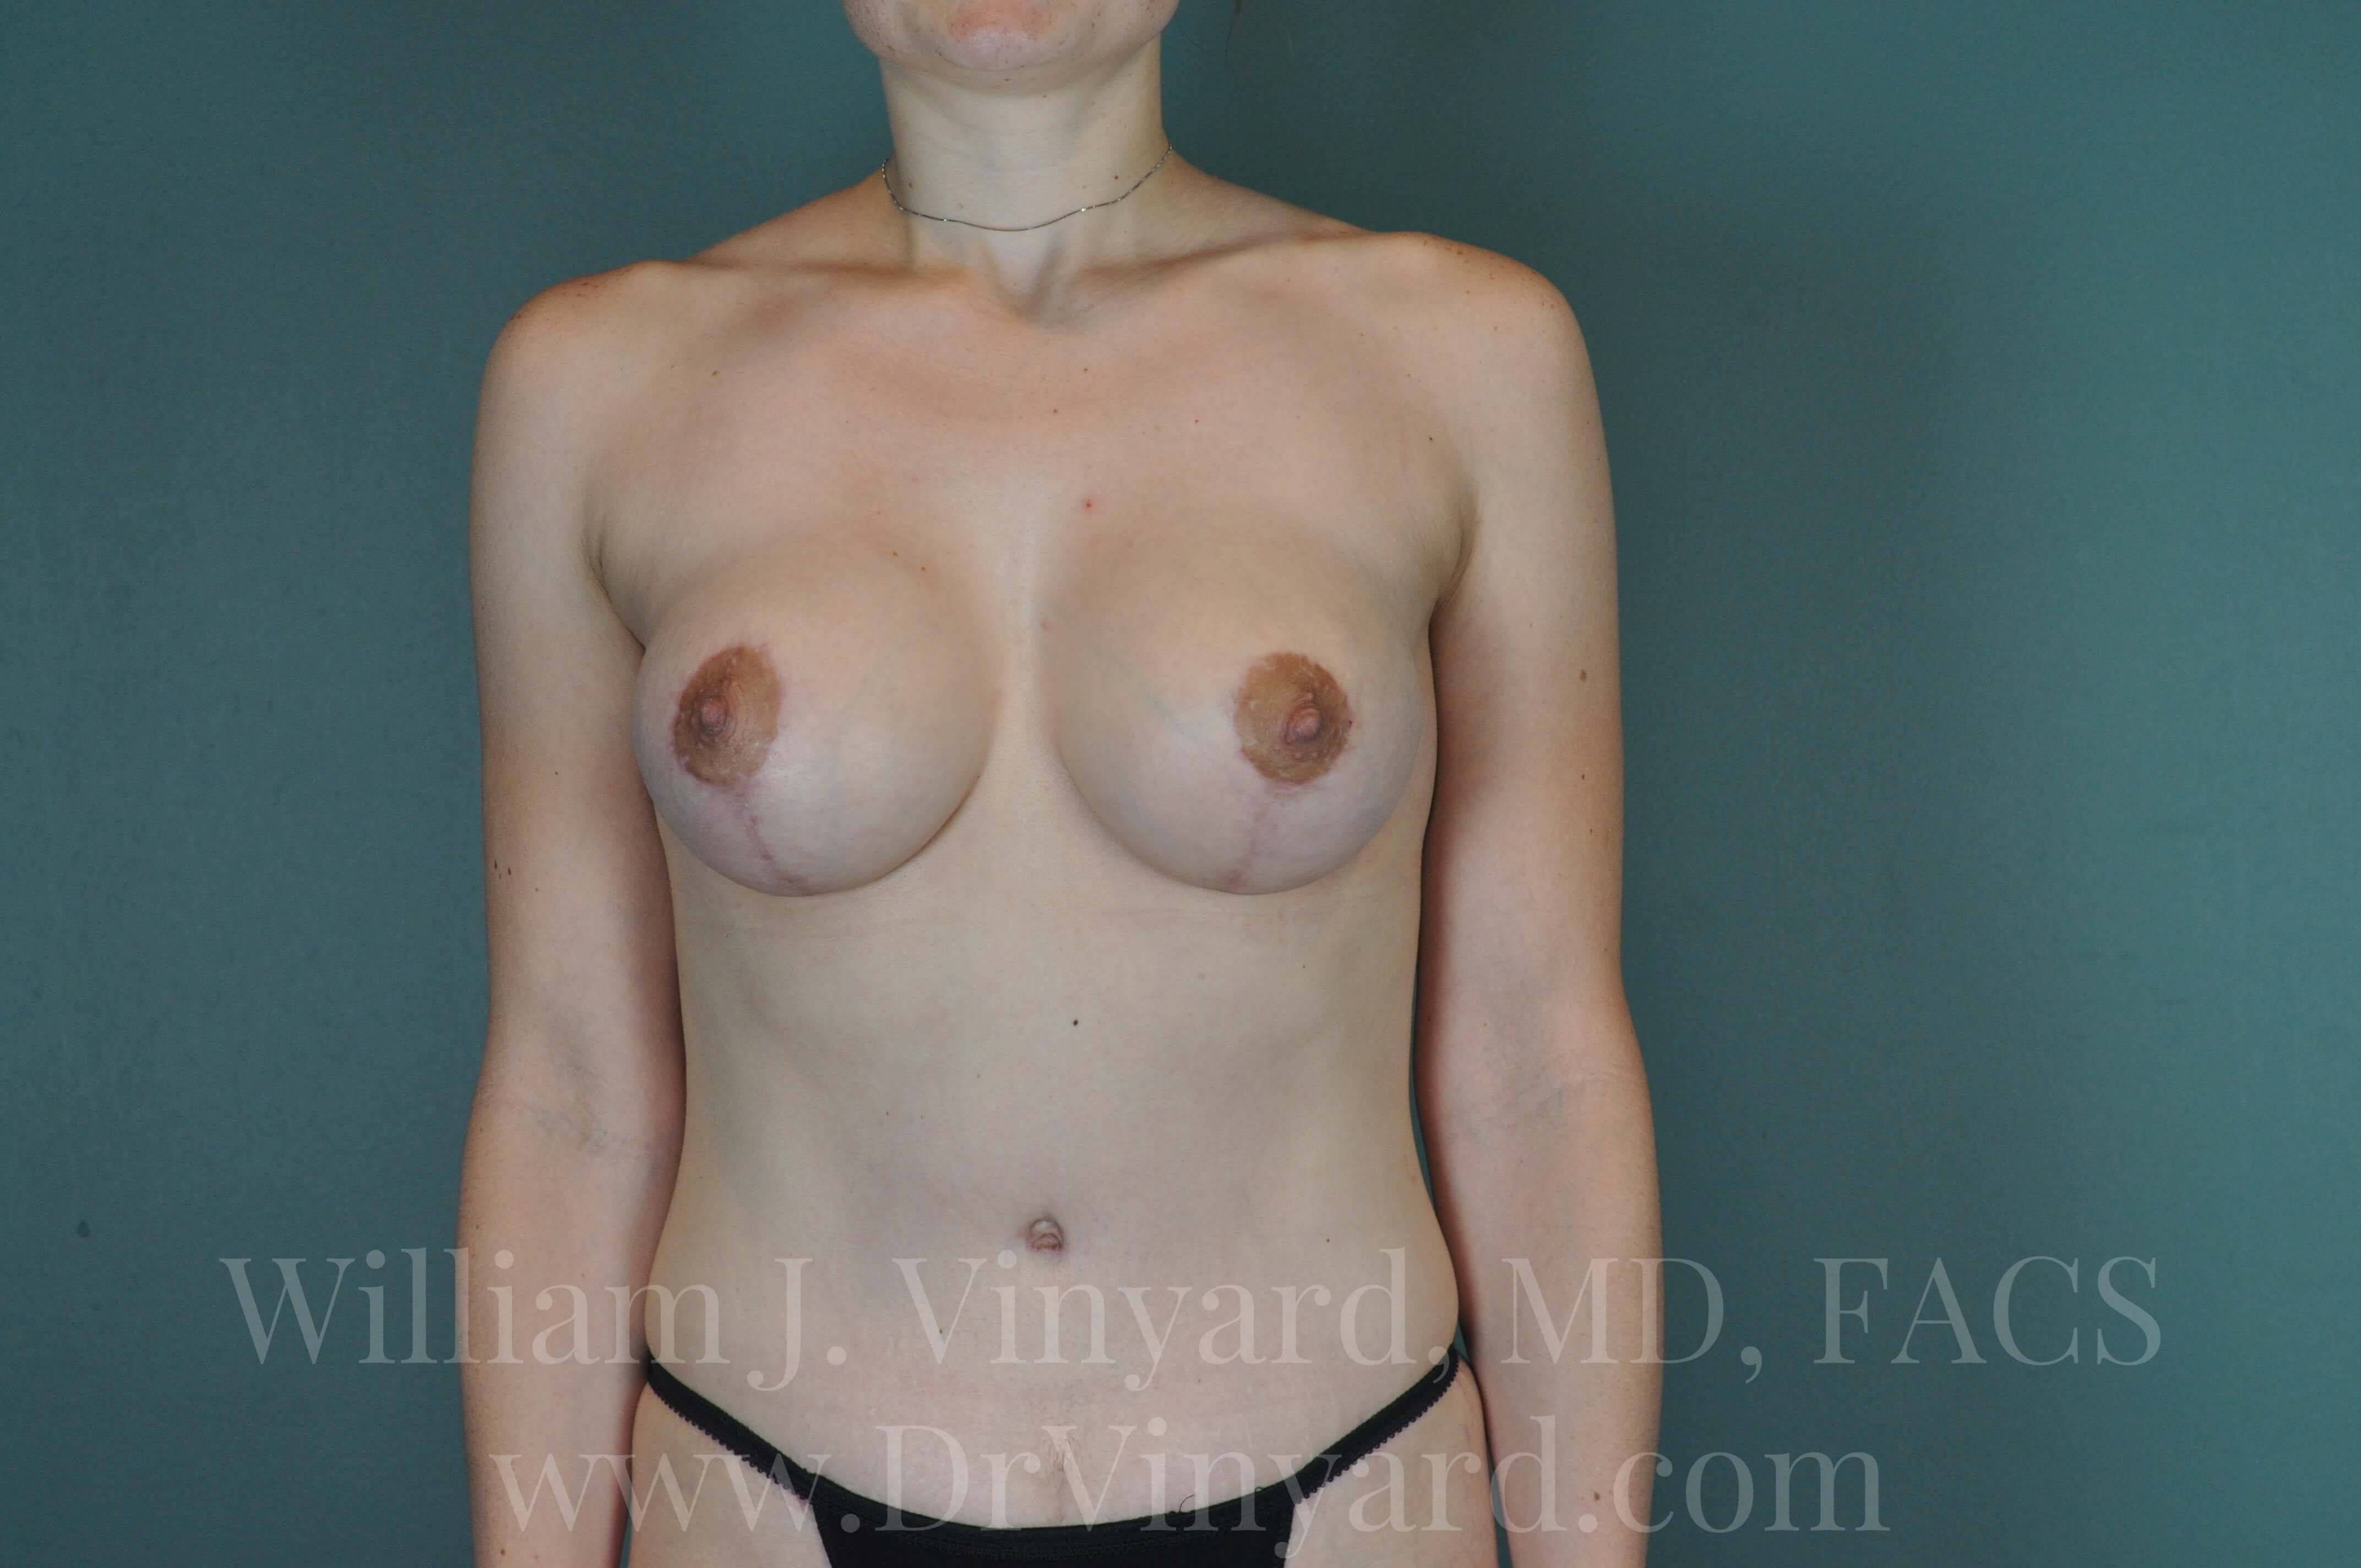 Front View - Breasts After